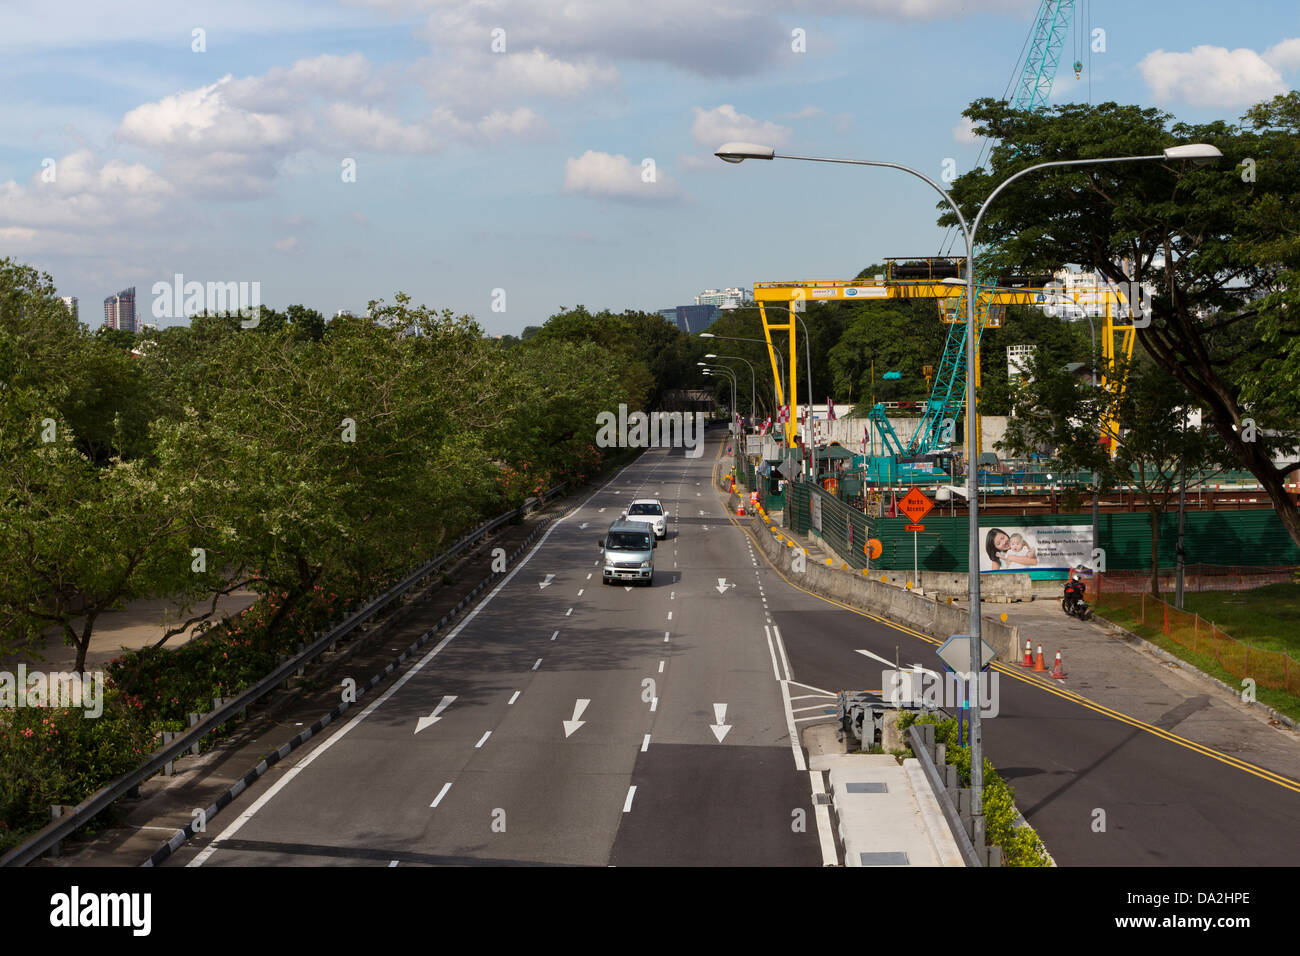 Road with construction machinery next to it, Singapore, Asia - Stock Image